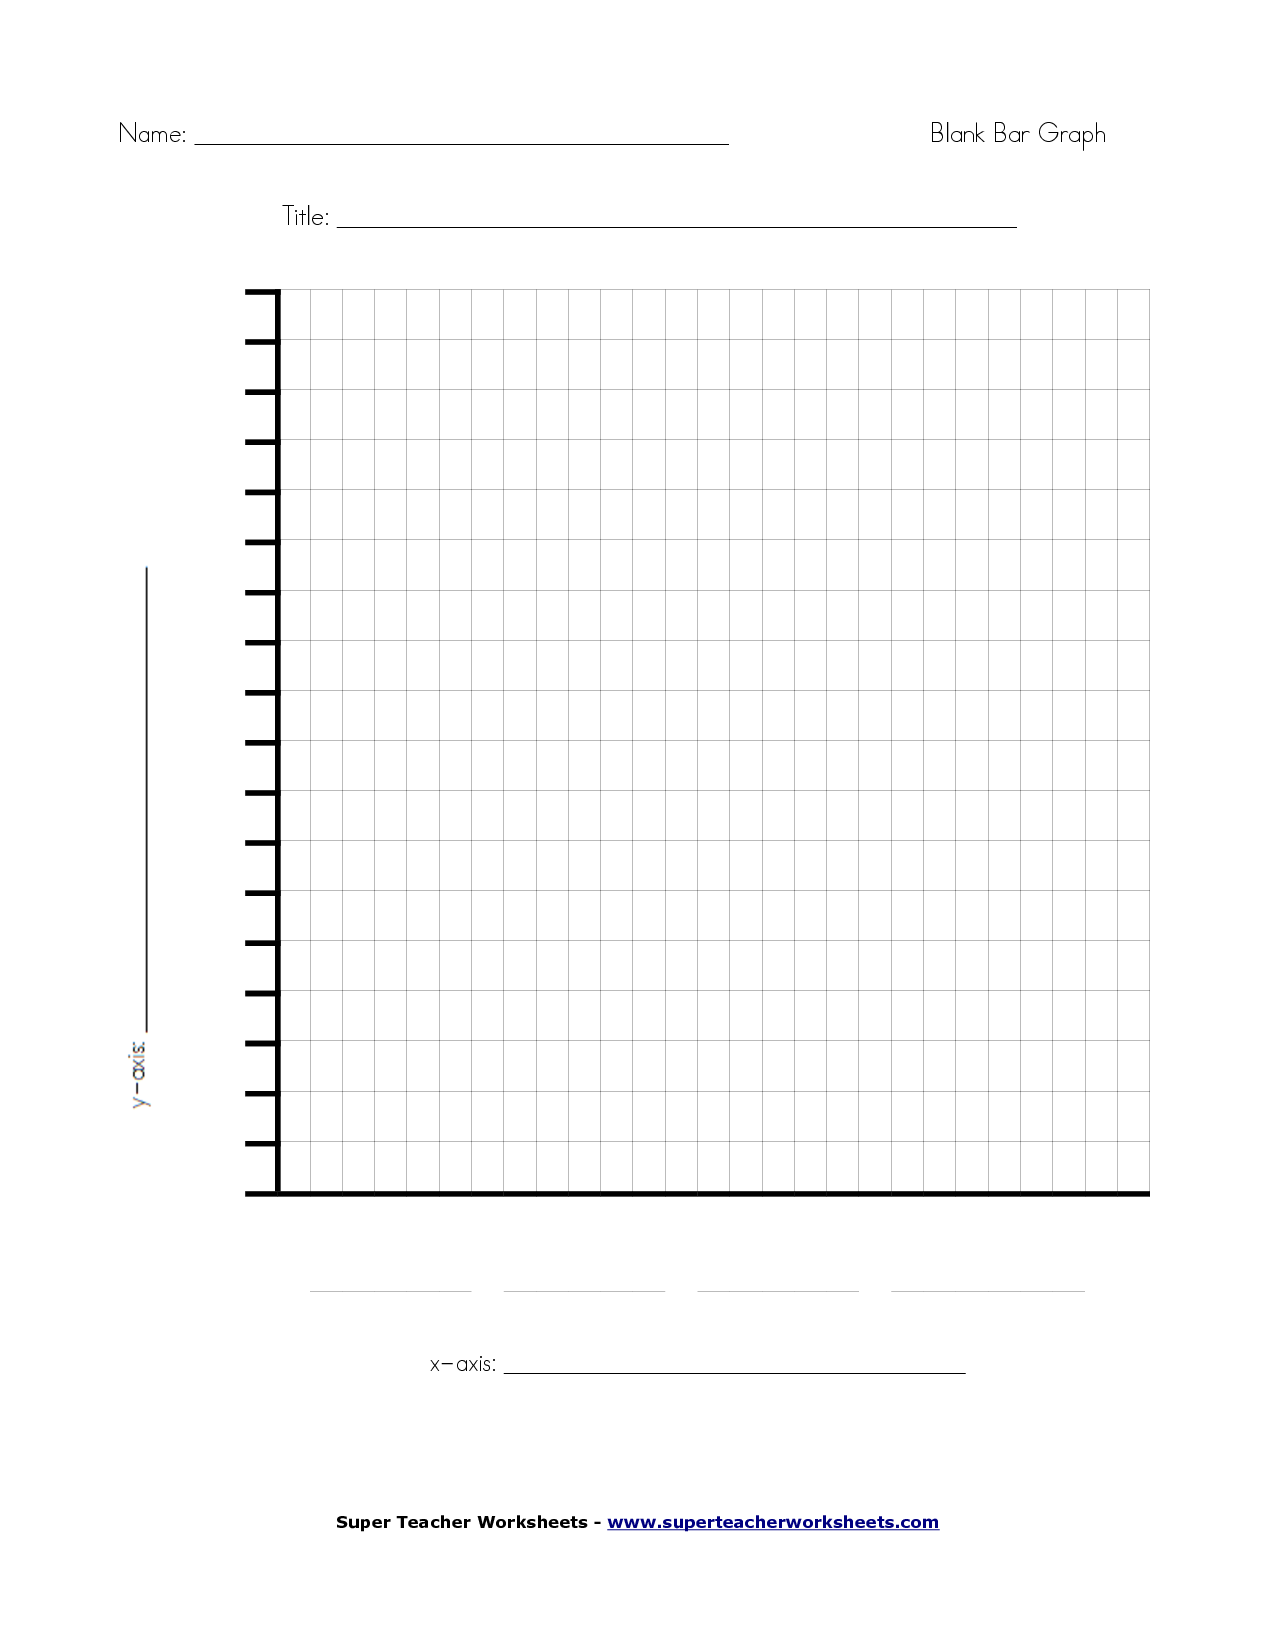 Worksheets Online Printable Bar Graph blank bar graph printable weather graphblock template best march 2017 calendar